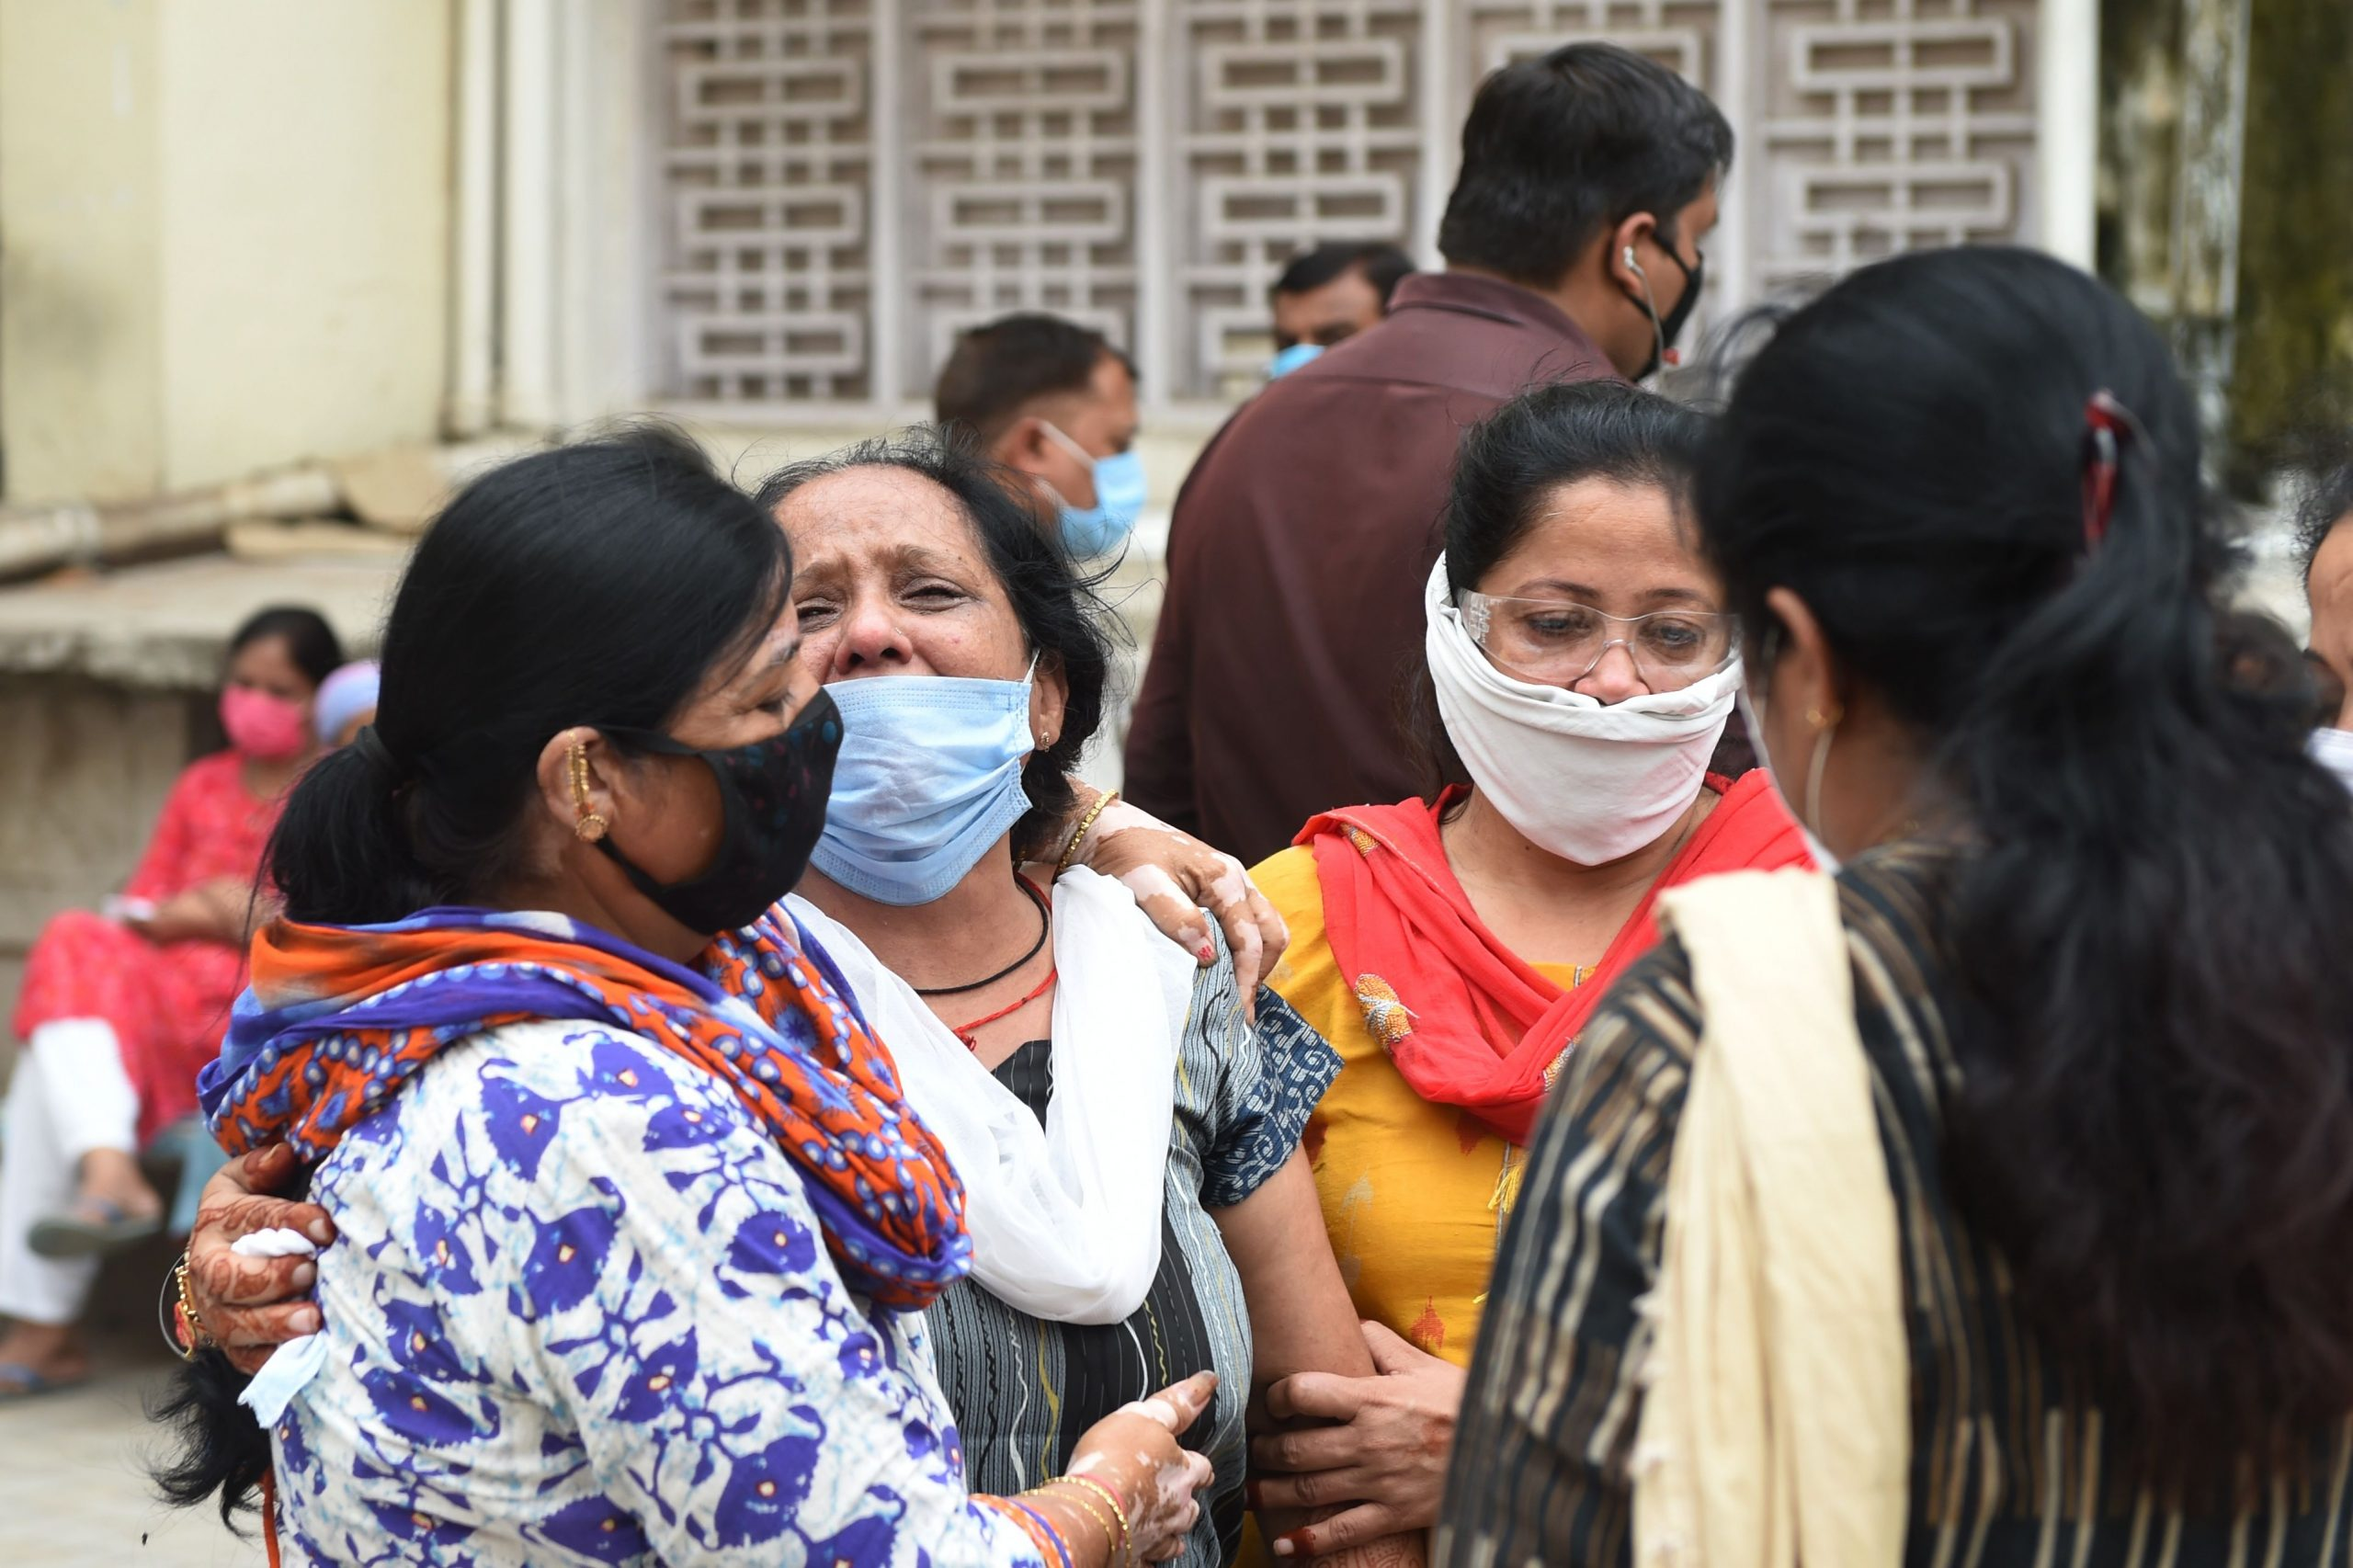 Relatives grief for their loved one outside the mortuary room of the Civil Hospital in Ahmedabad on August 6, 2020, after a fire broke early in the morning in the intensive care unit of the Shrey Hospital killing 8 coronavirus patients. - (Photo by SAM PANTHAKY/AFP via Getty Images)